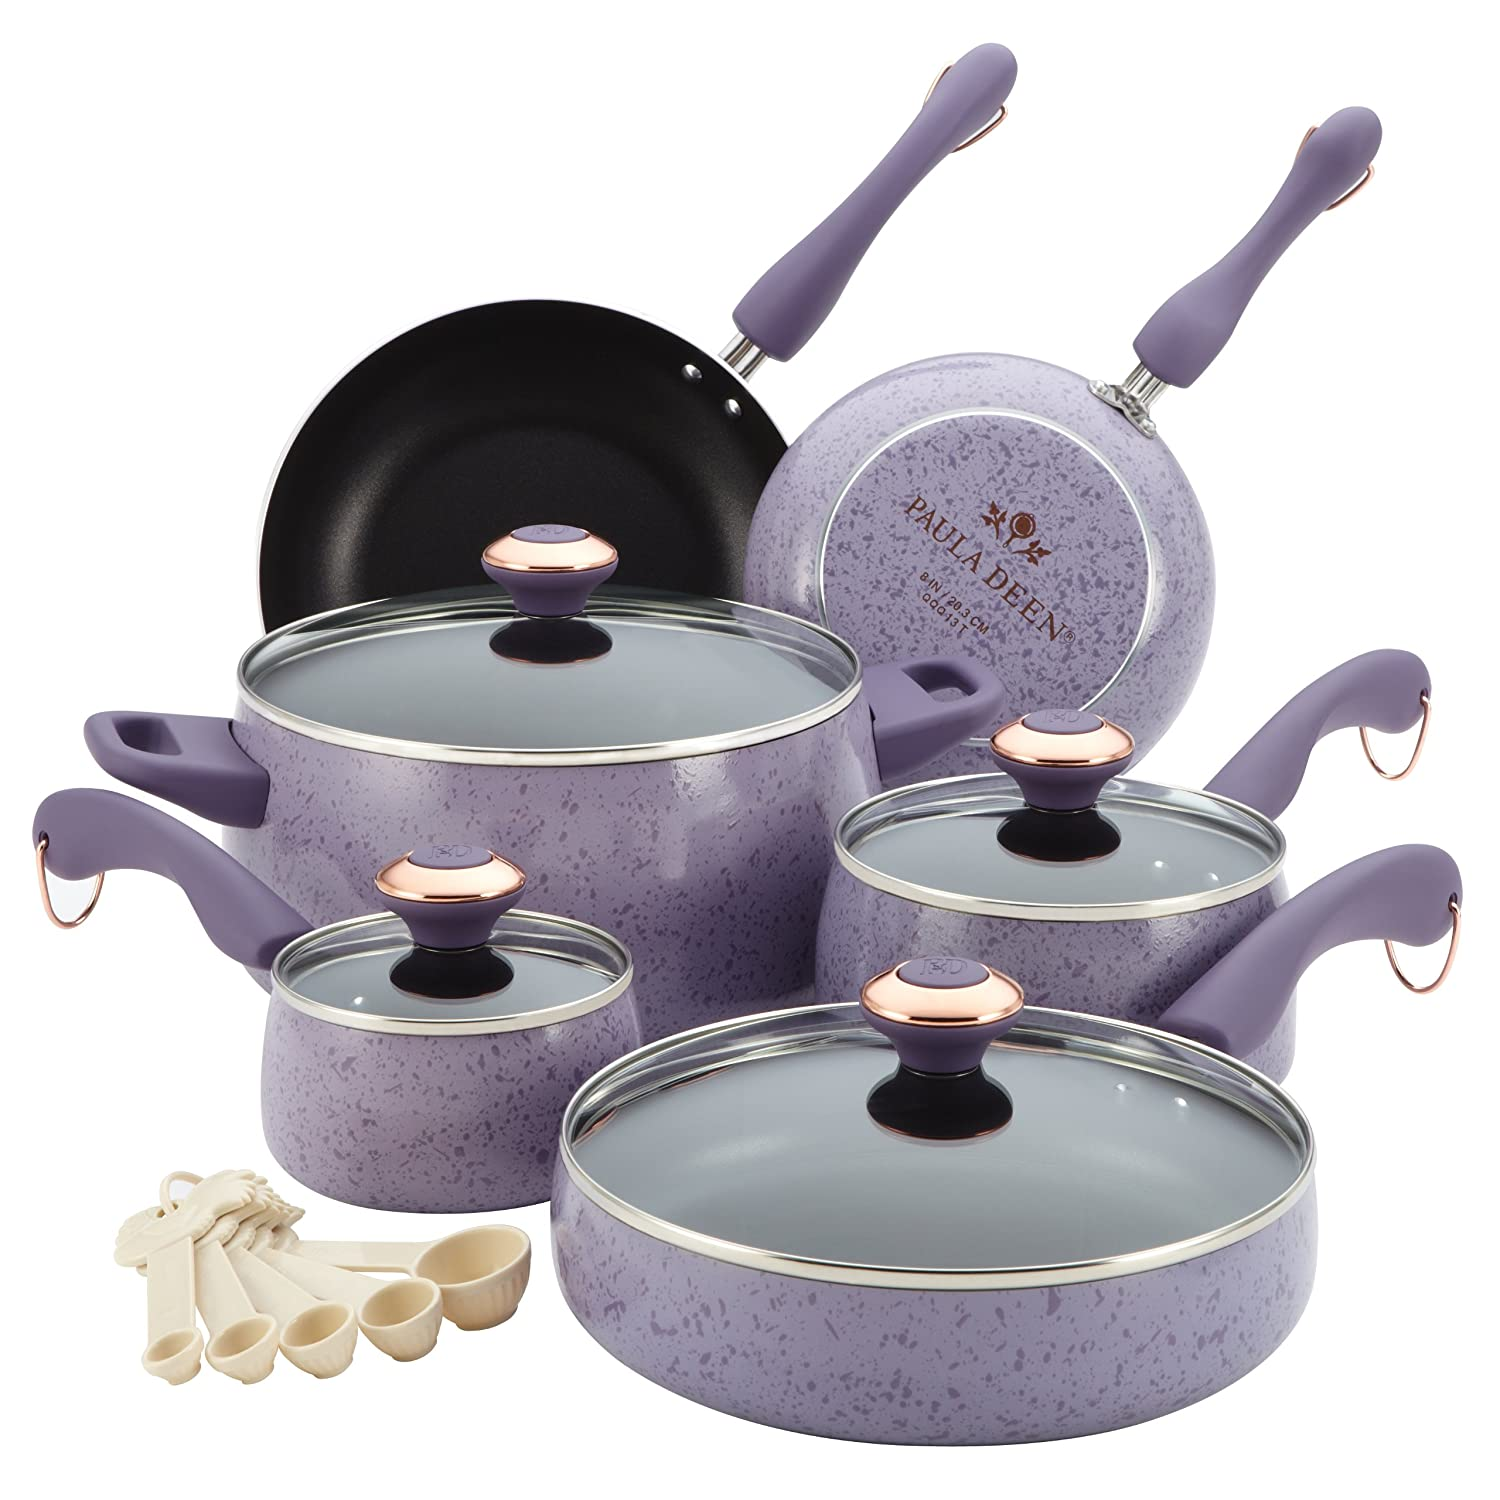 Pots And Pans Reviews: Top 5 2016 Review Of The Best Kitchenware ...